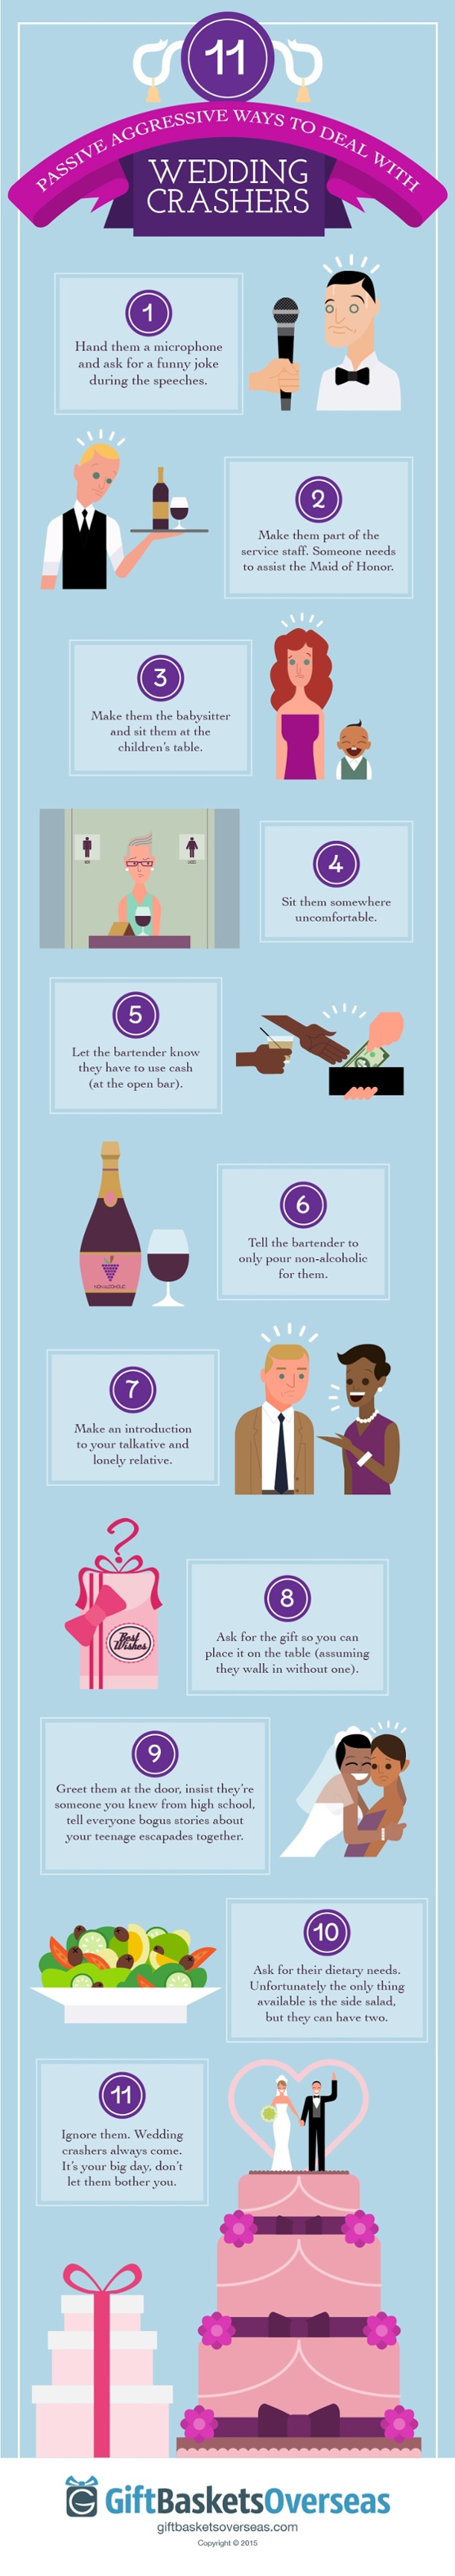 11 Ways to Deal with Wedding Crashers - Wedding Crashers - 11 Ways to Deal with Uninvited Guests